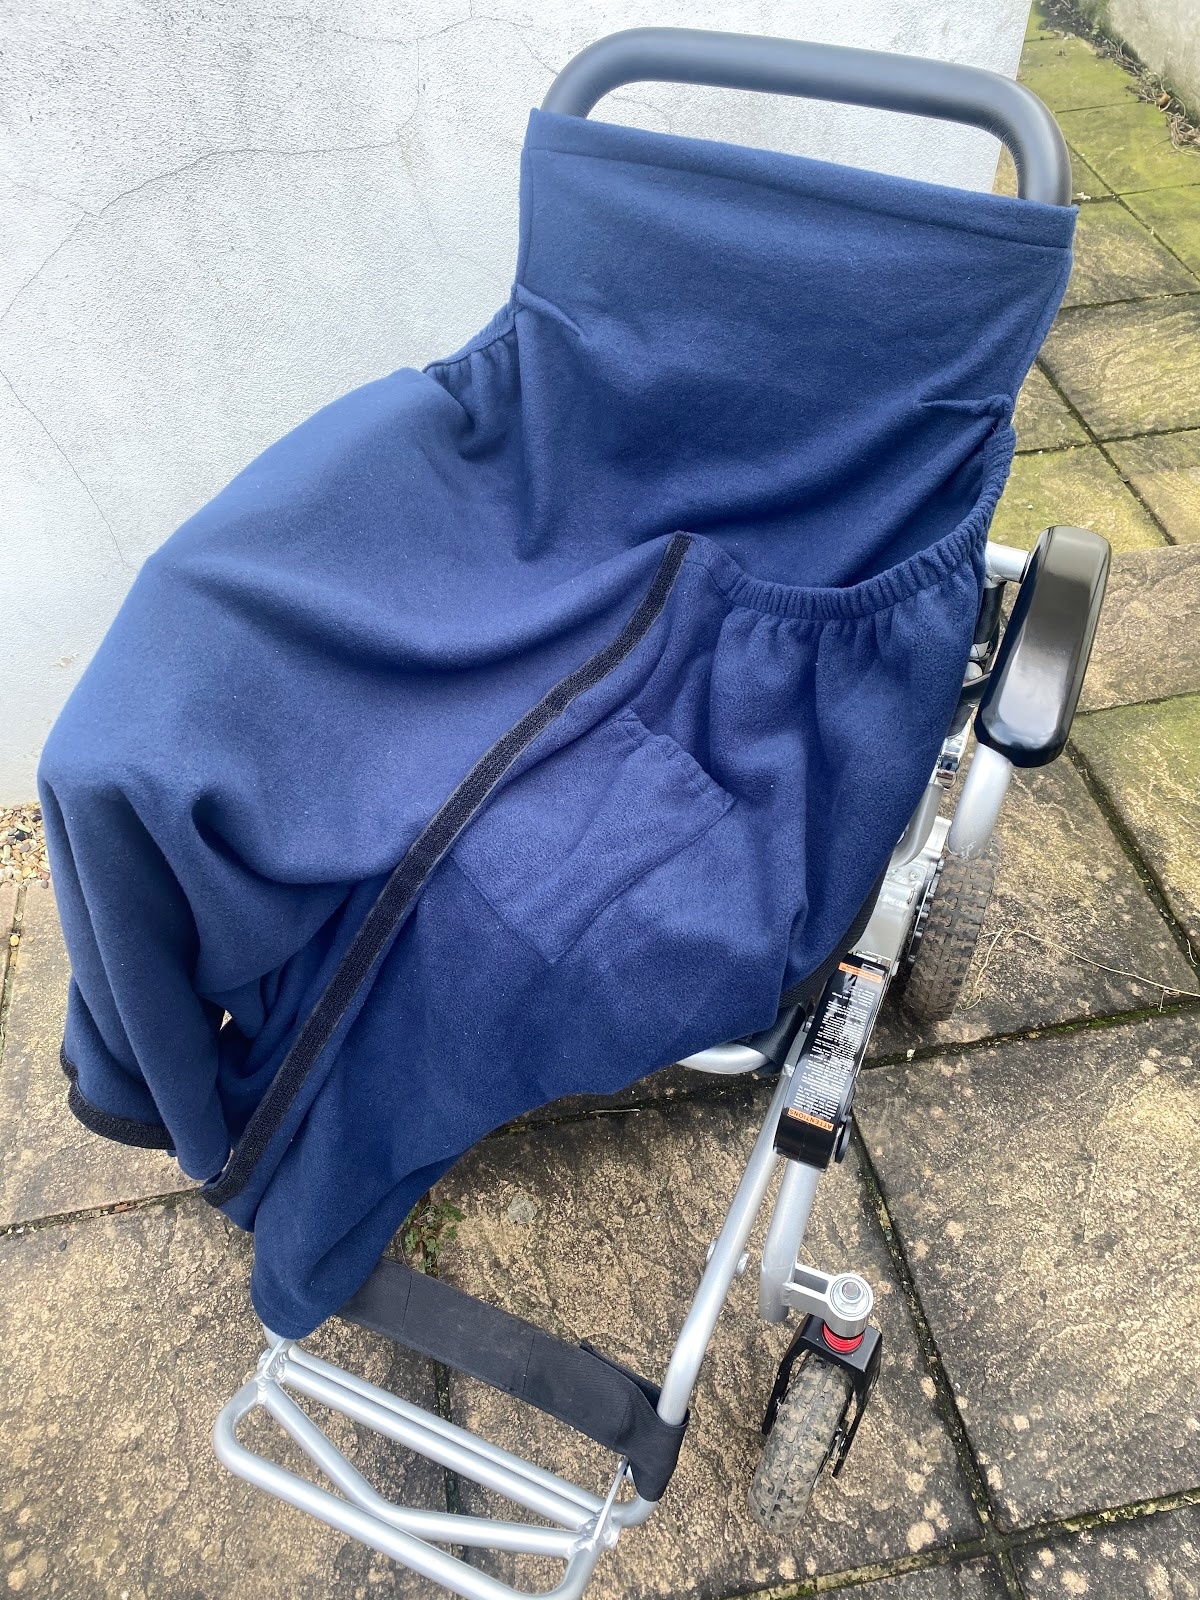 NiCosy – Wheelchair Blanket